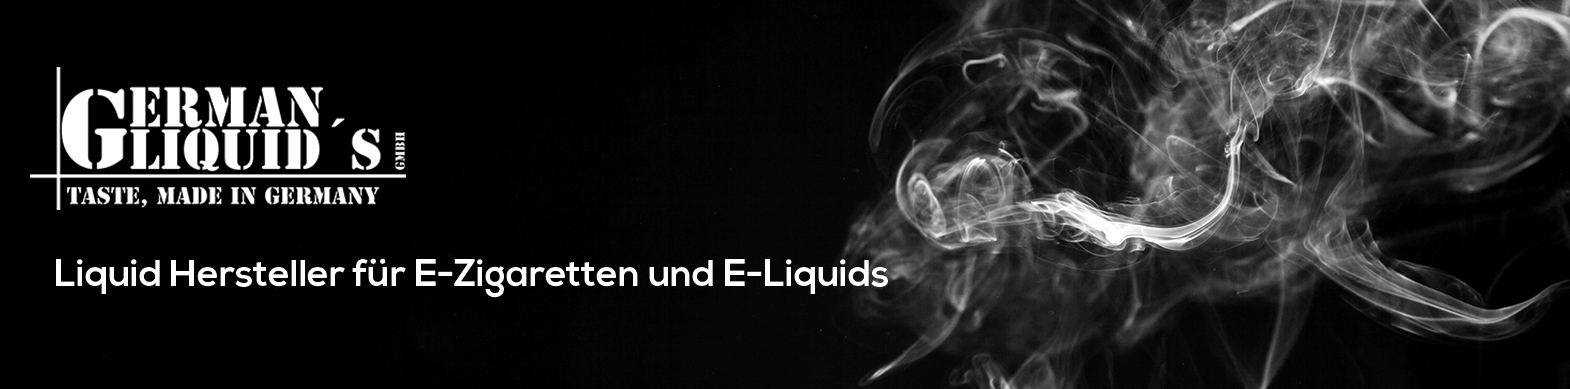 Germanliquids-Slider-Webseite